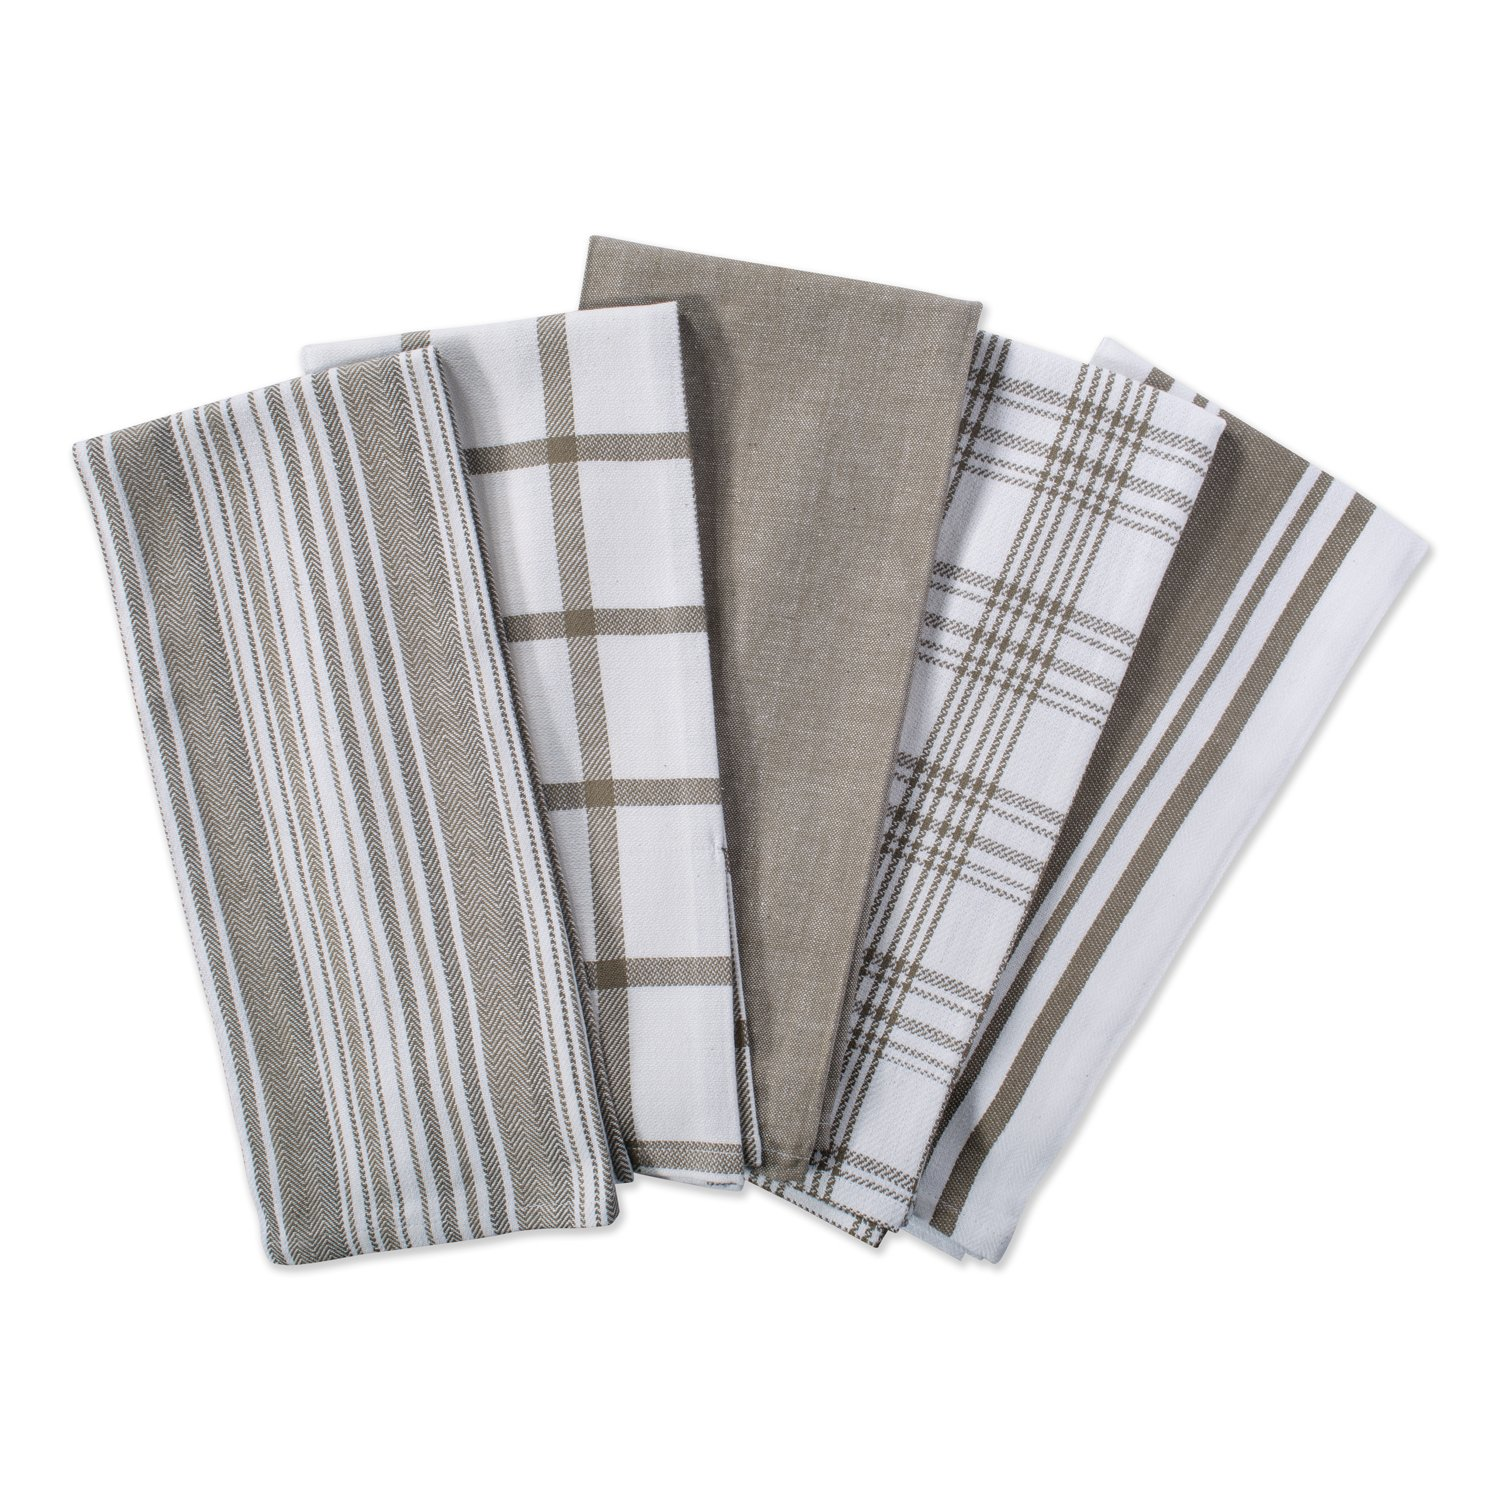 """DII Kitchen Dish Towels (Brown, 18x28""""), Ultra Absorbent & Fast Drying, Professional Grade Cotton Tea Towels for Everyday Cooking and Baking -Assorted Patterns, Set of 5"""